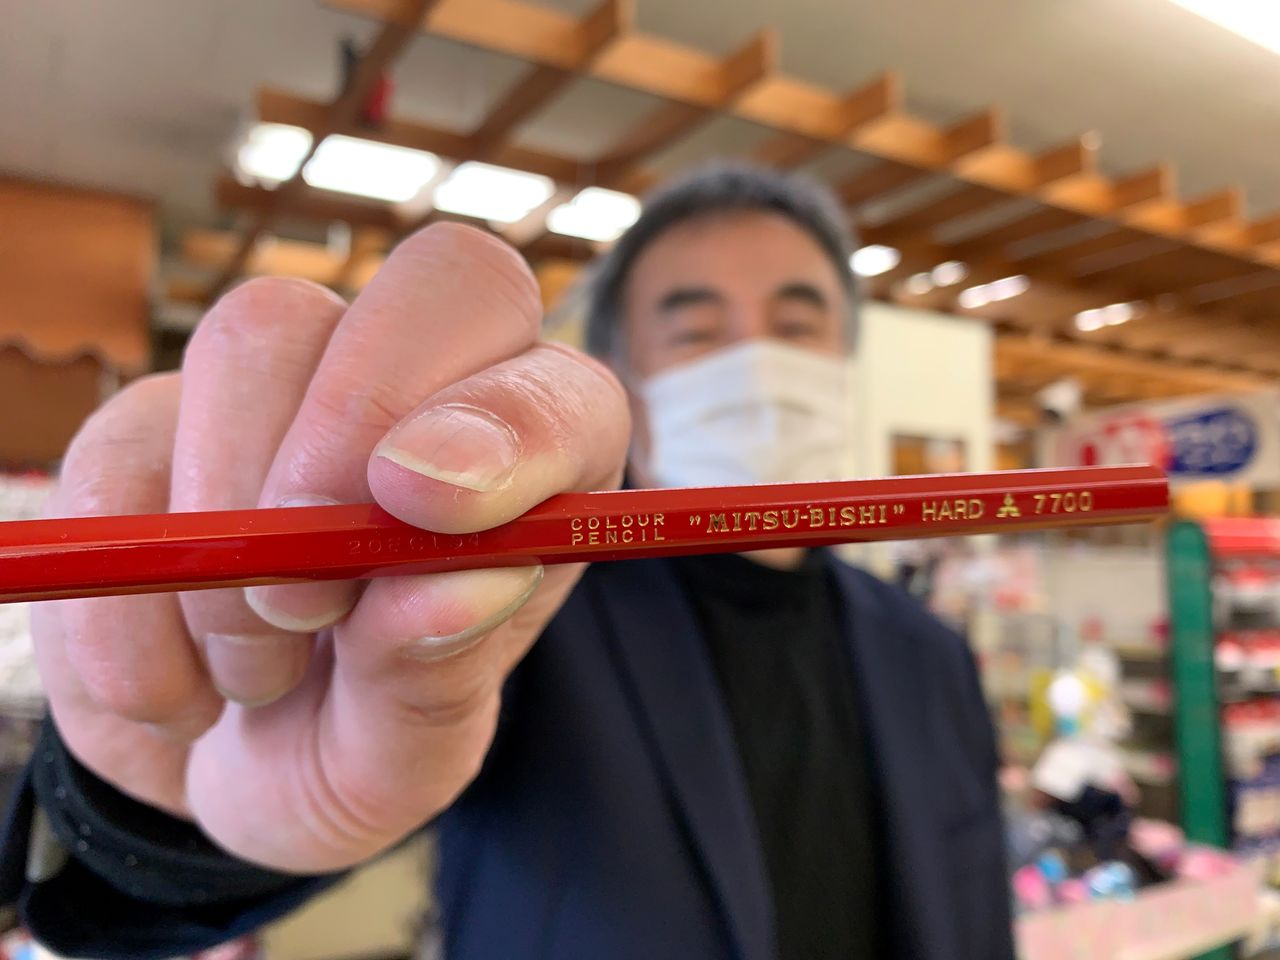 Naoya Nagatsuma, 11th-generation owner of Tokyo stationery store Soumaya Genshirou Shouten, holds a Mitsubishi pencil in Tokyo, Japan, February 3, 2021. REUTERS/Chang-Ran Kim REUTERS/Chang-Ran Kim